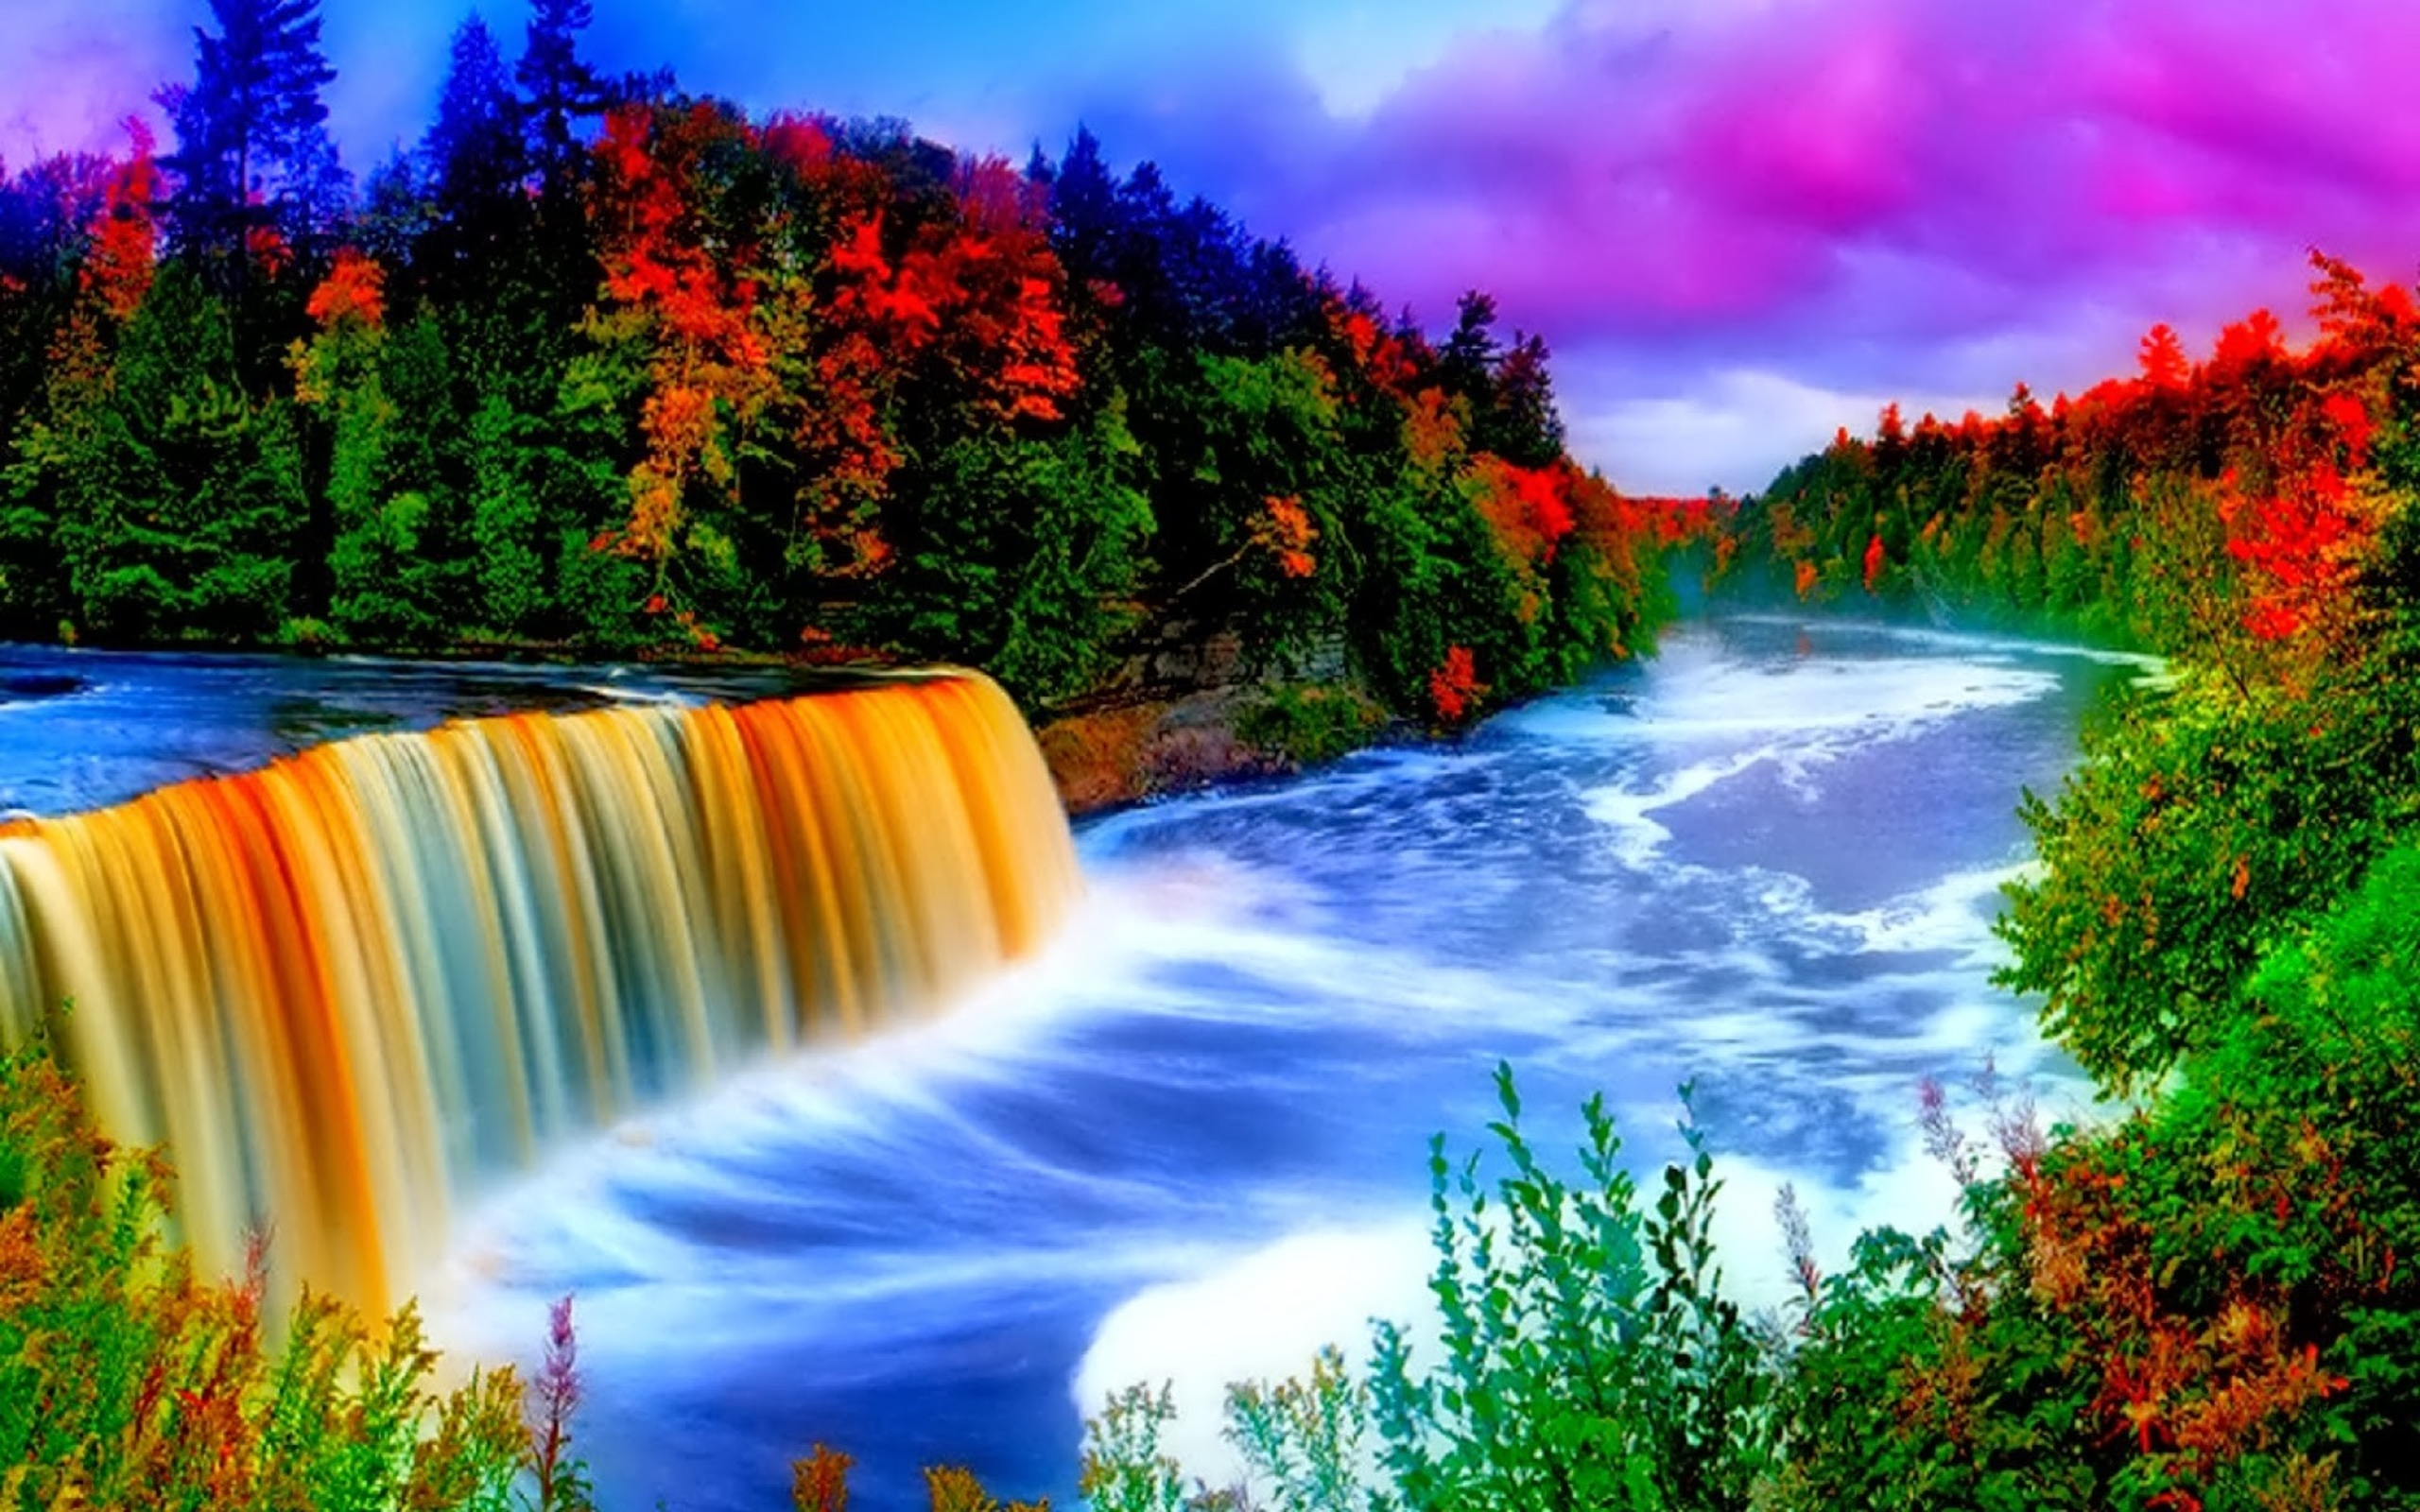 Christian Fall Iphone Wallpaper Colorful Waterfall Background 9665 Wallpapers13 Com